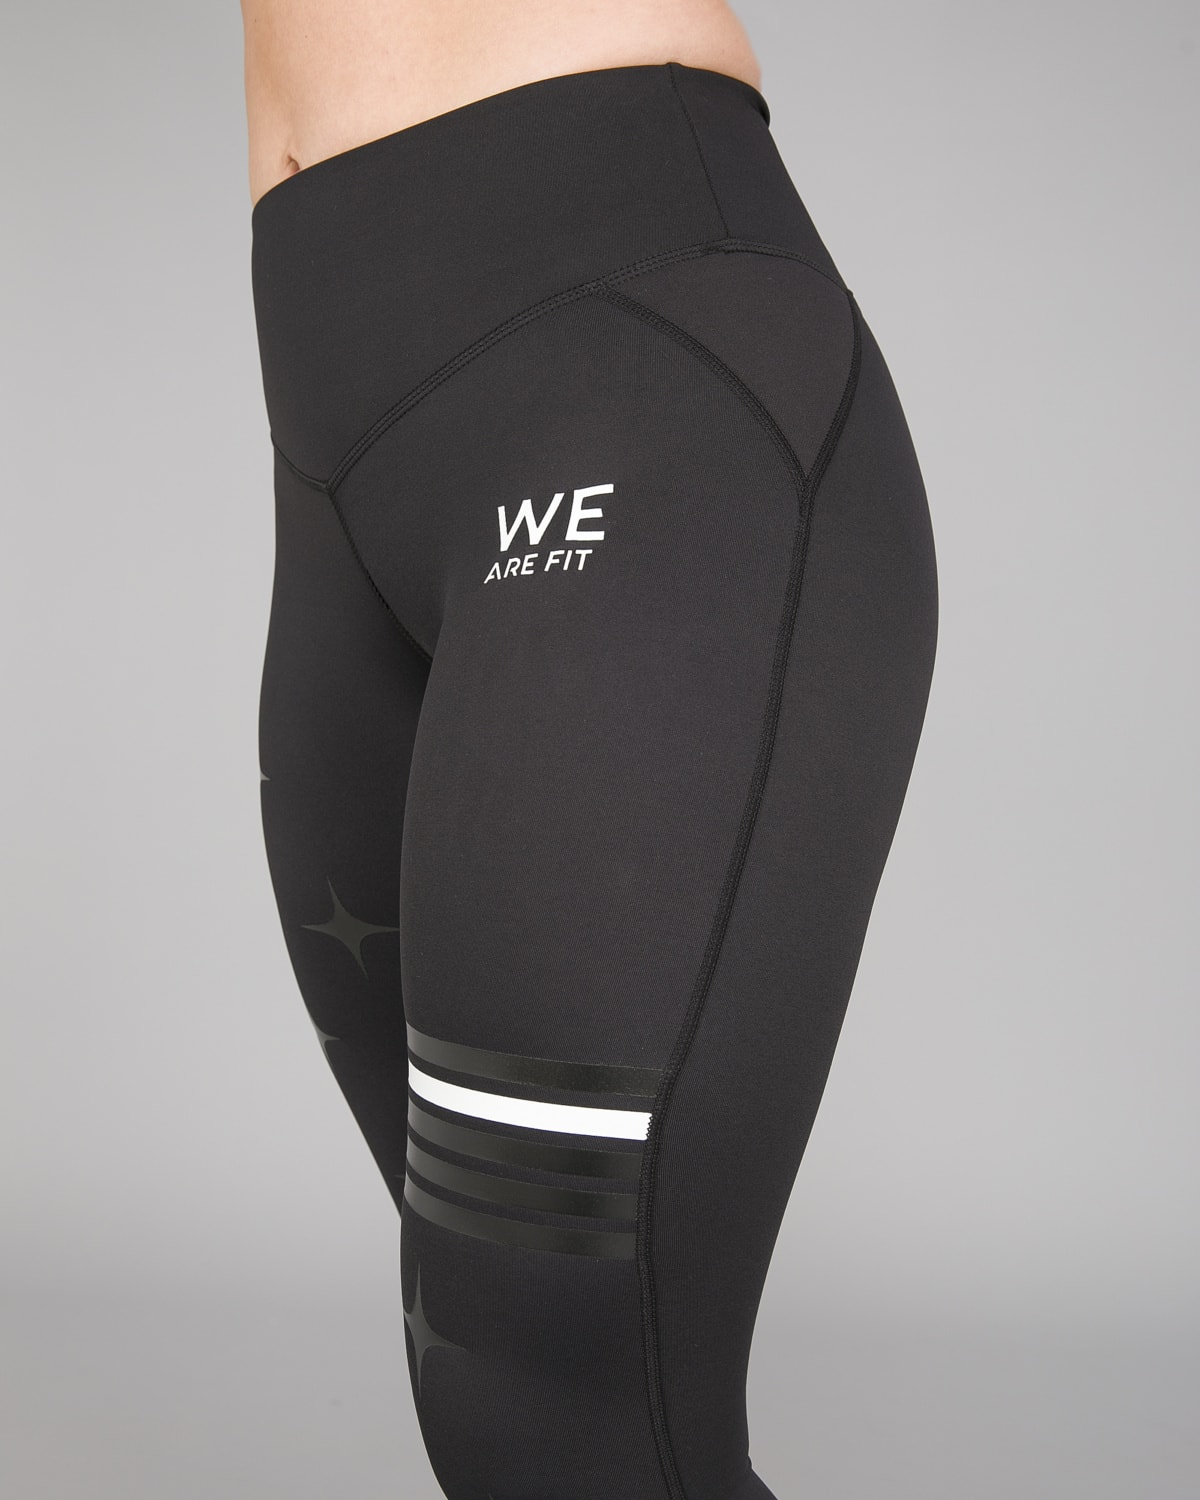 We Are Fit Star Black Tights1